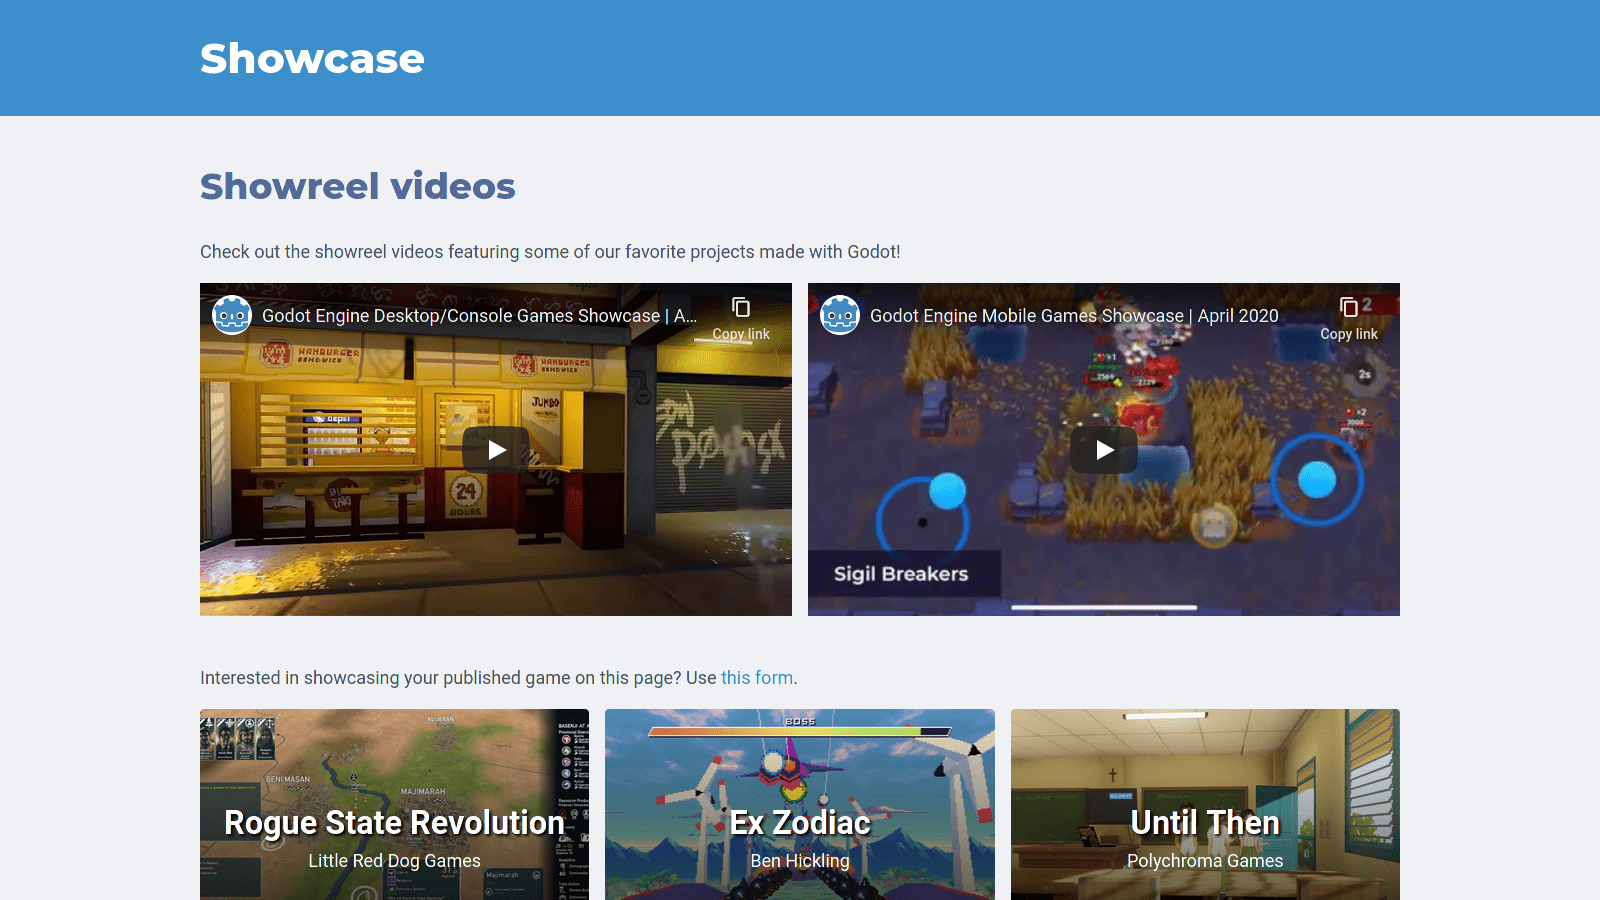 The new Showcase page, featuring videos and projects